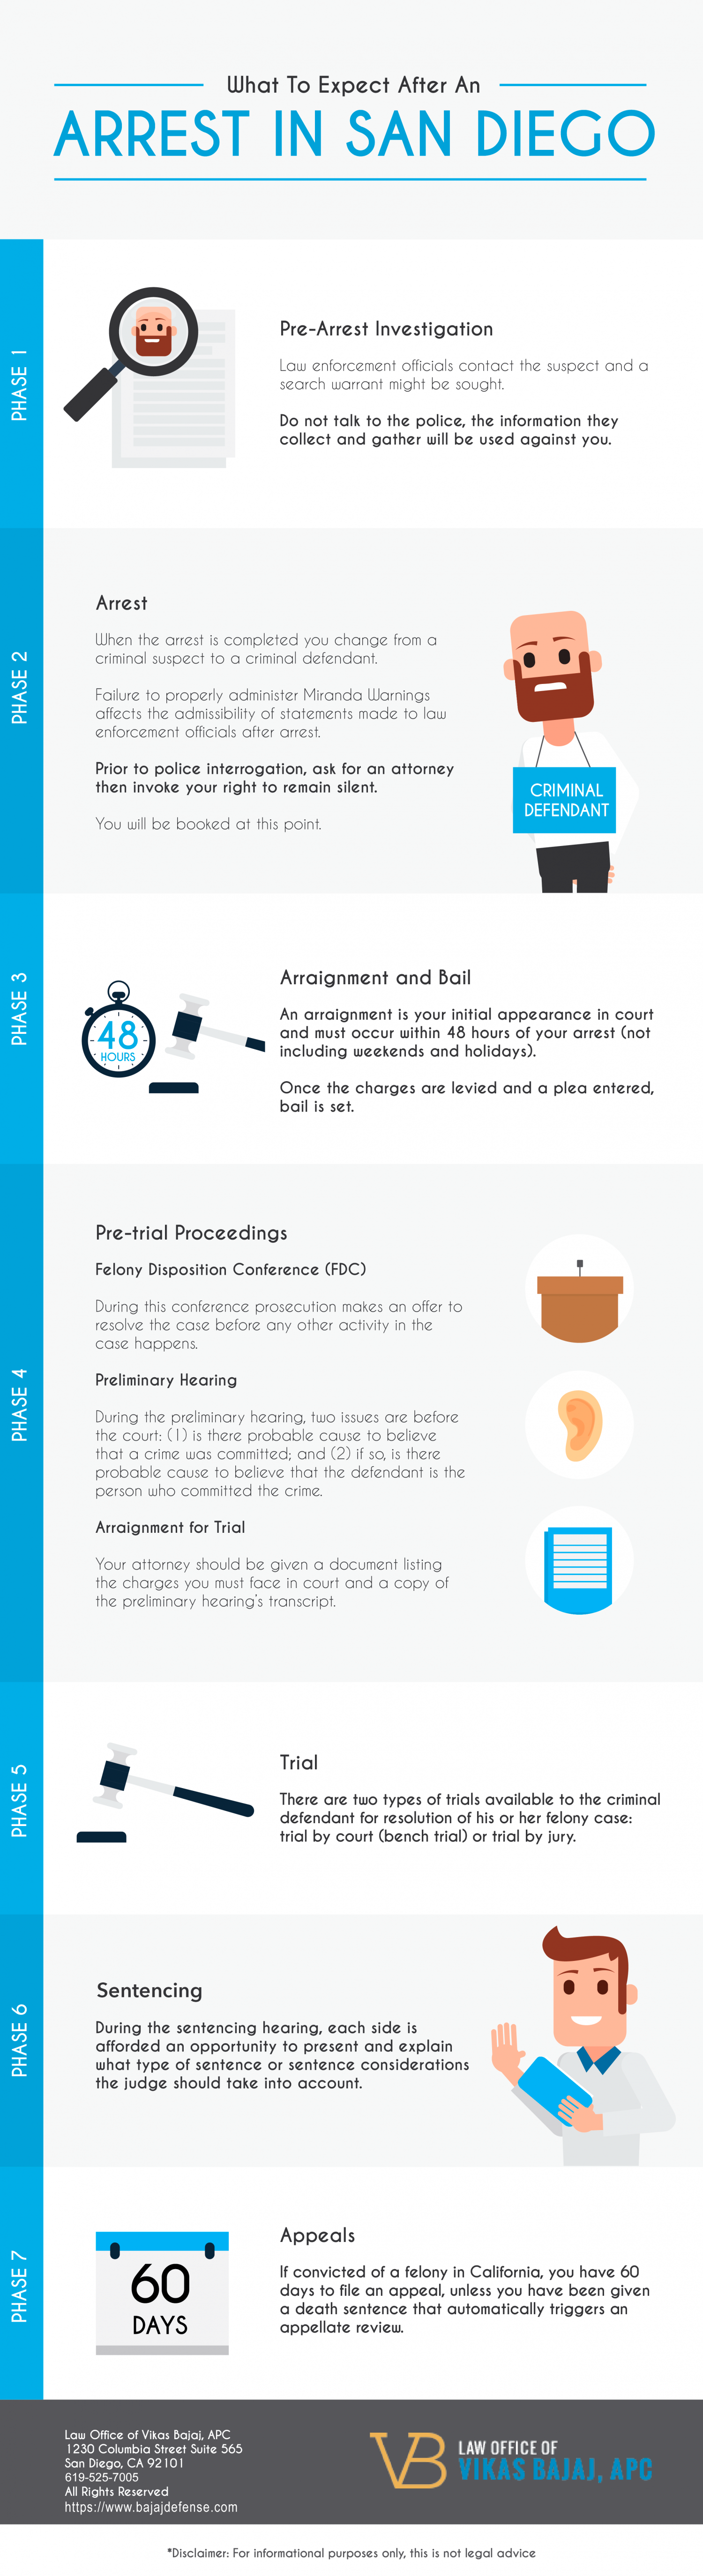 What to Expect After an Arrest in San Diego Infographic